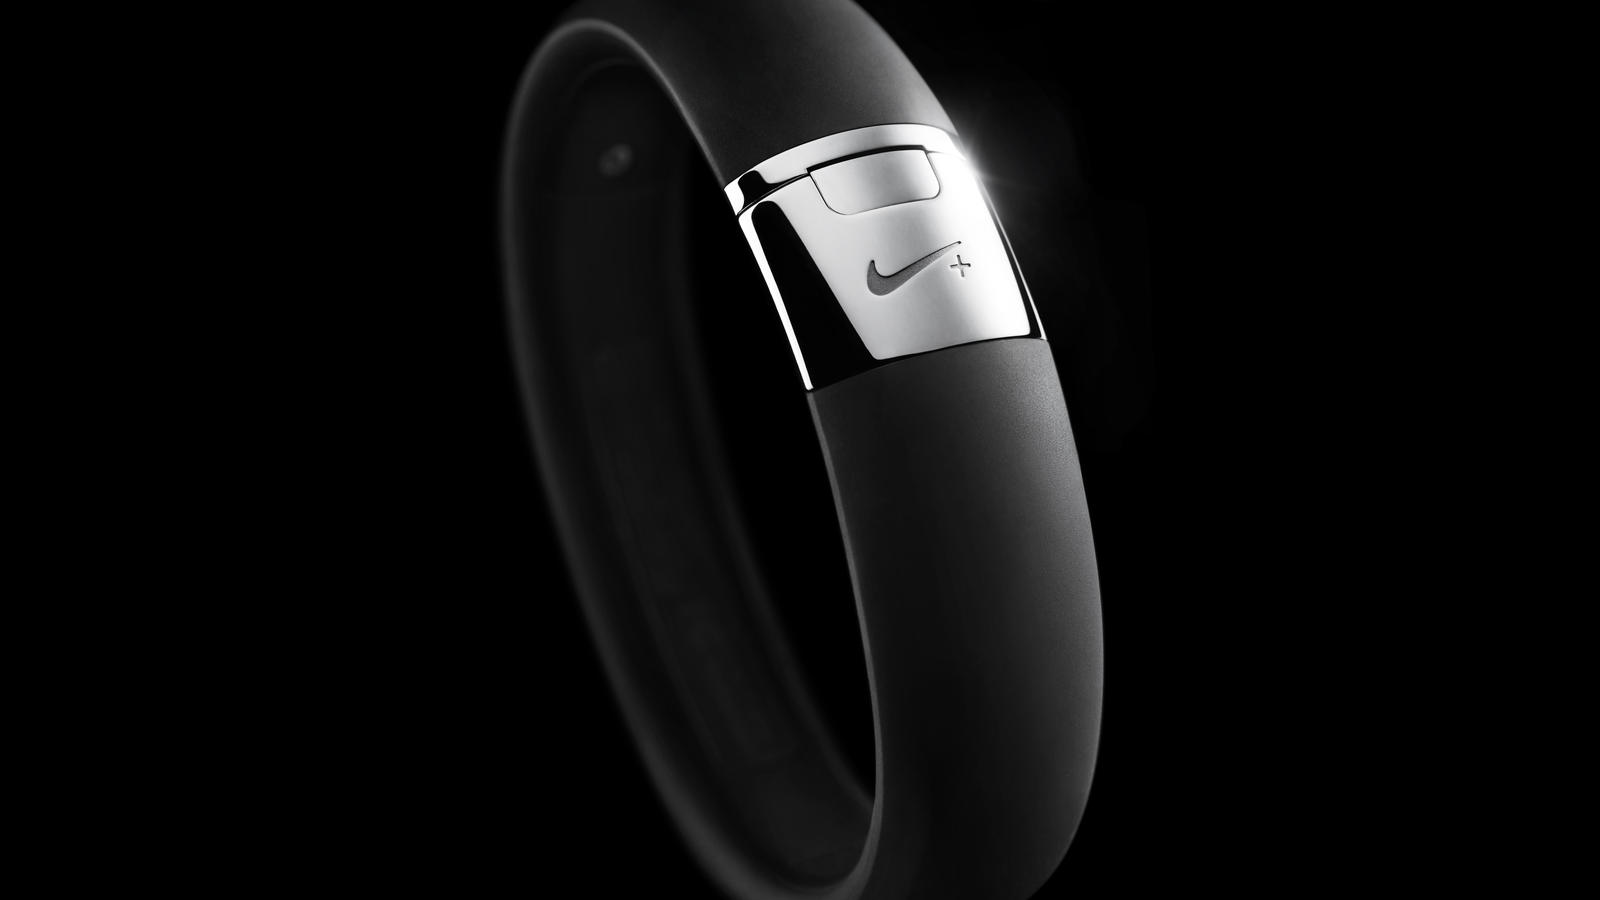 The Latest Nike FuelBand is Still Kind of a Glorified Pedometer pics